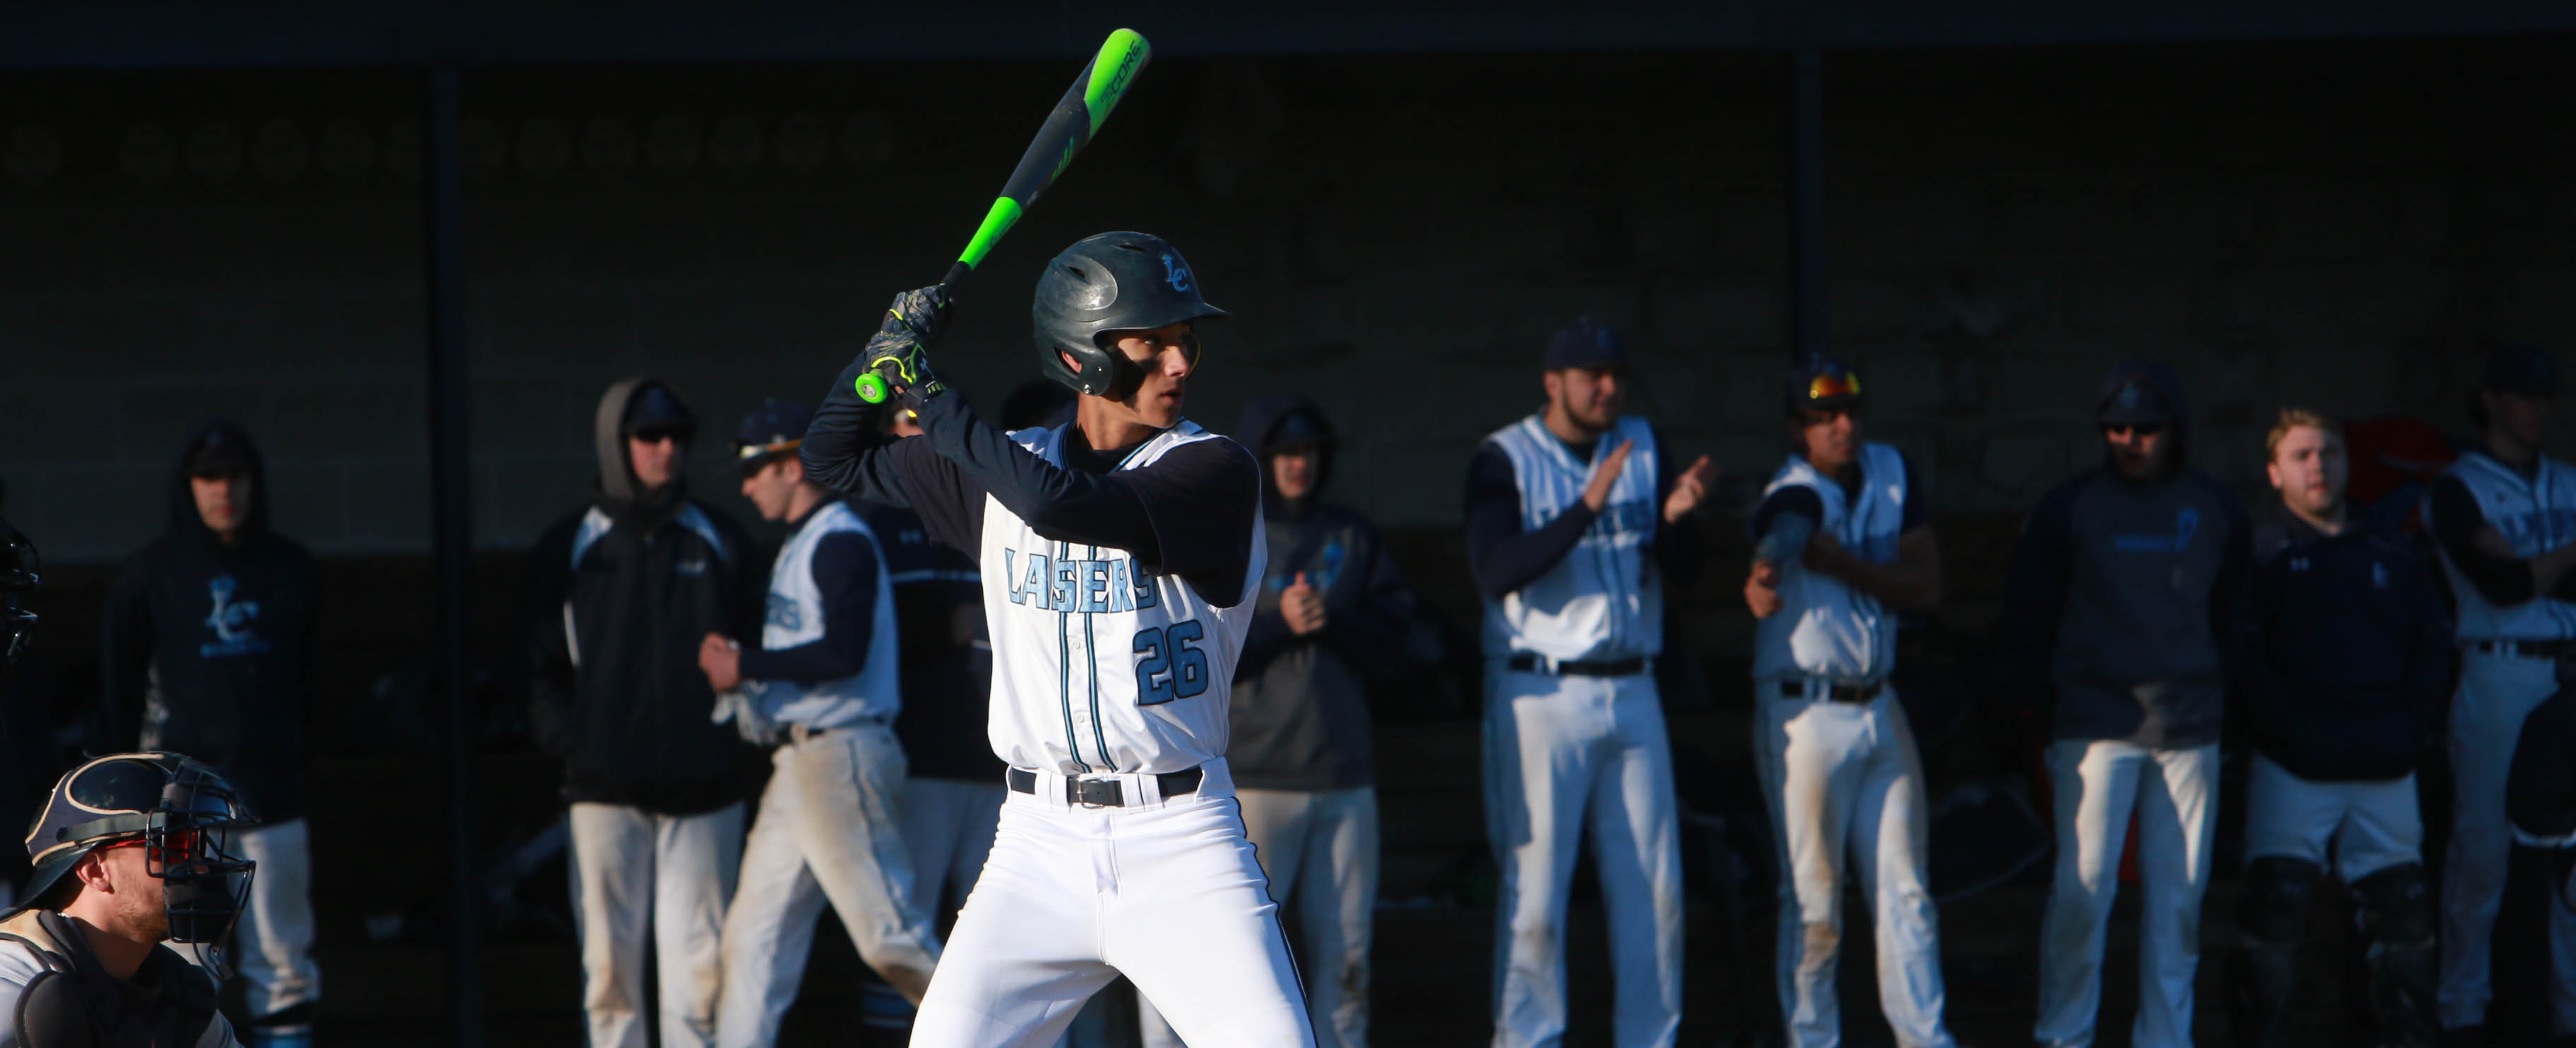 Baseball Scores 37 Runs, Sweeps Albertus Magnus in Final GNAC Doubleheader